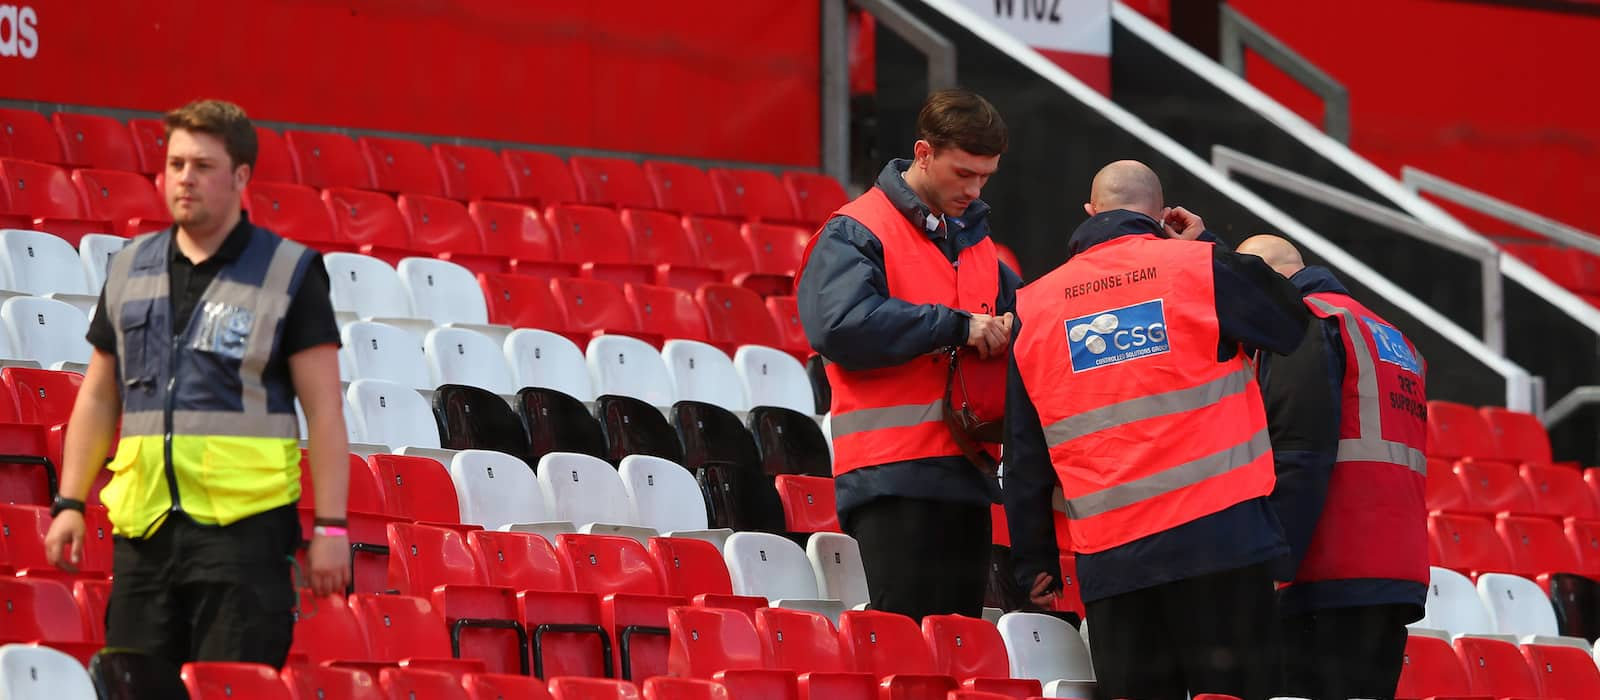 Gallery: Man United players leave Old Trafford after abandoned Bournemouth game